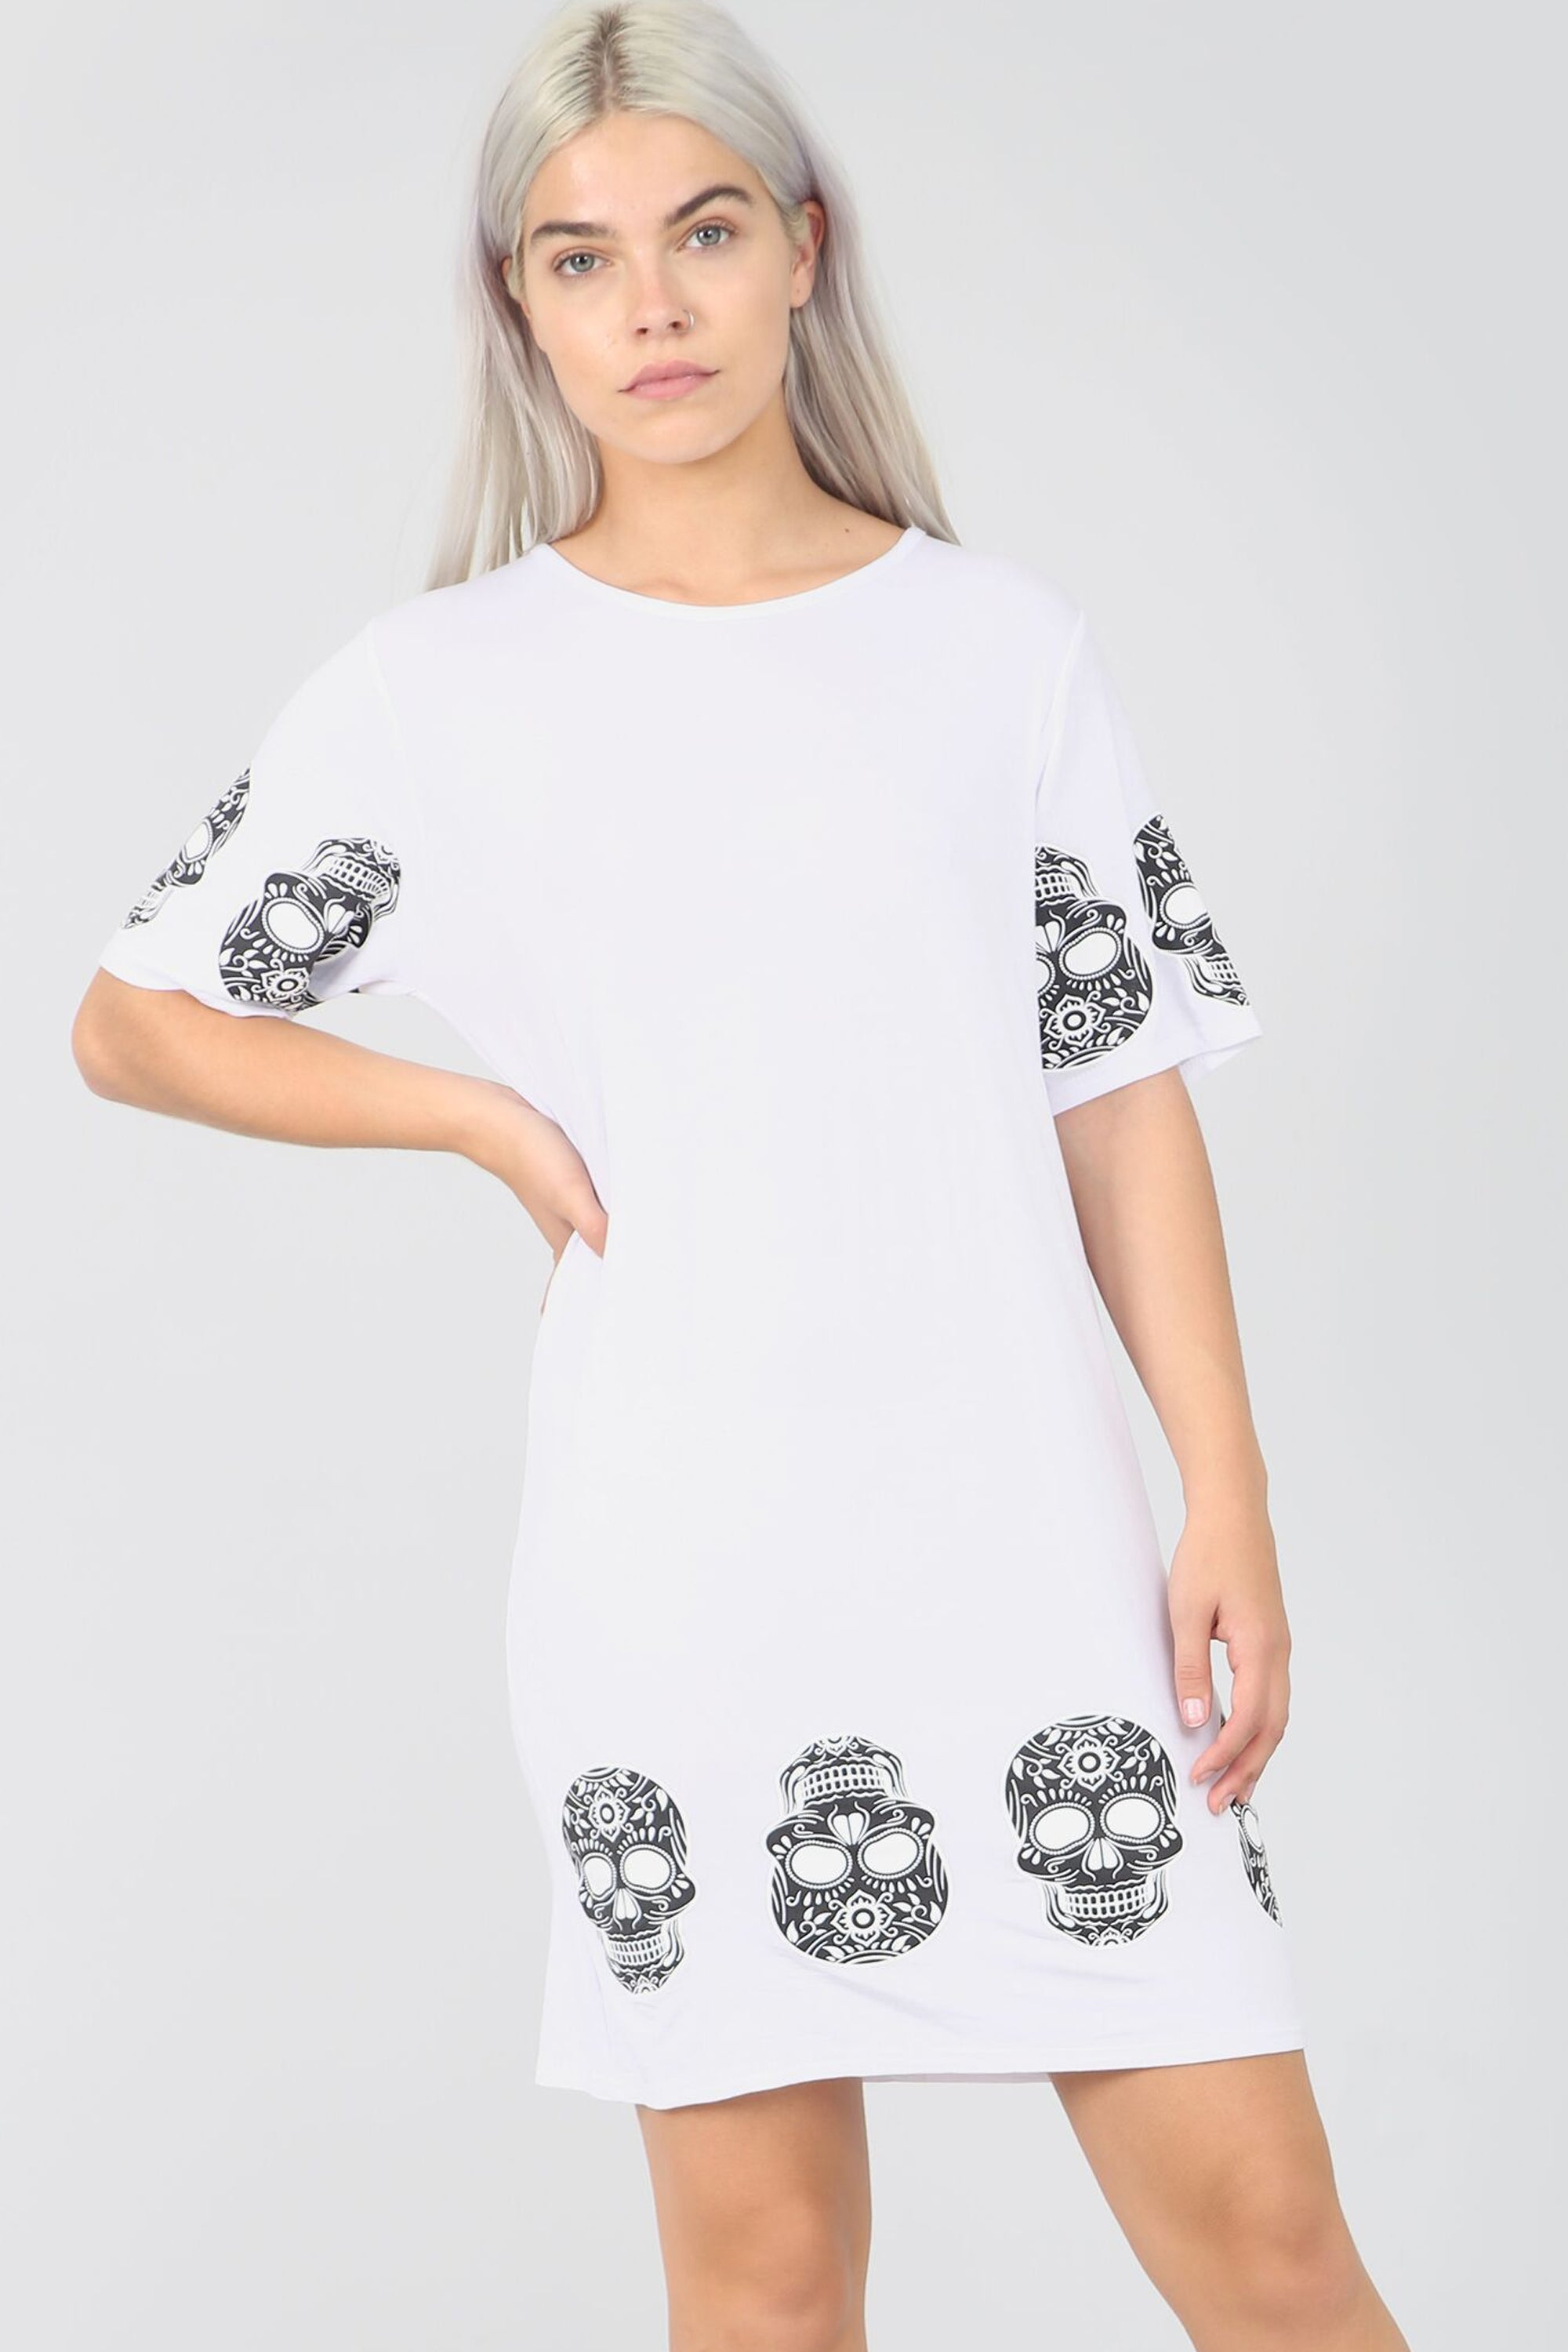 Skull Print Loose Fit Khaki Tshirt Dress - bejealous-com